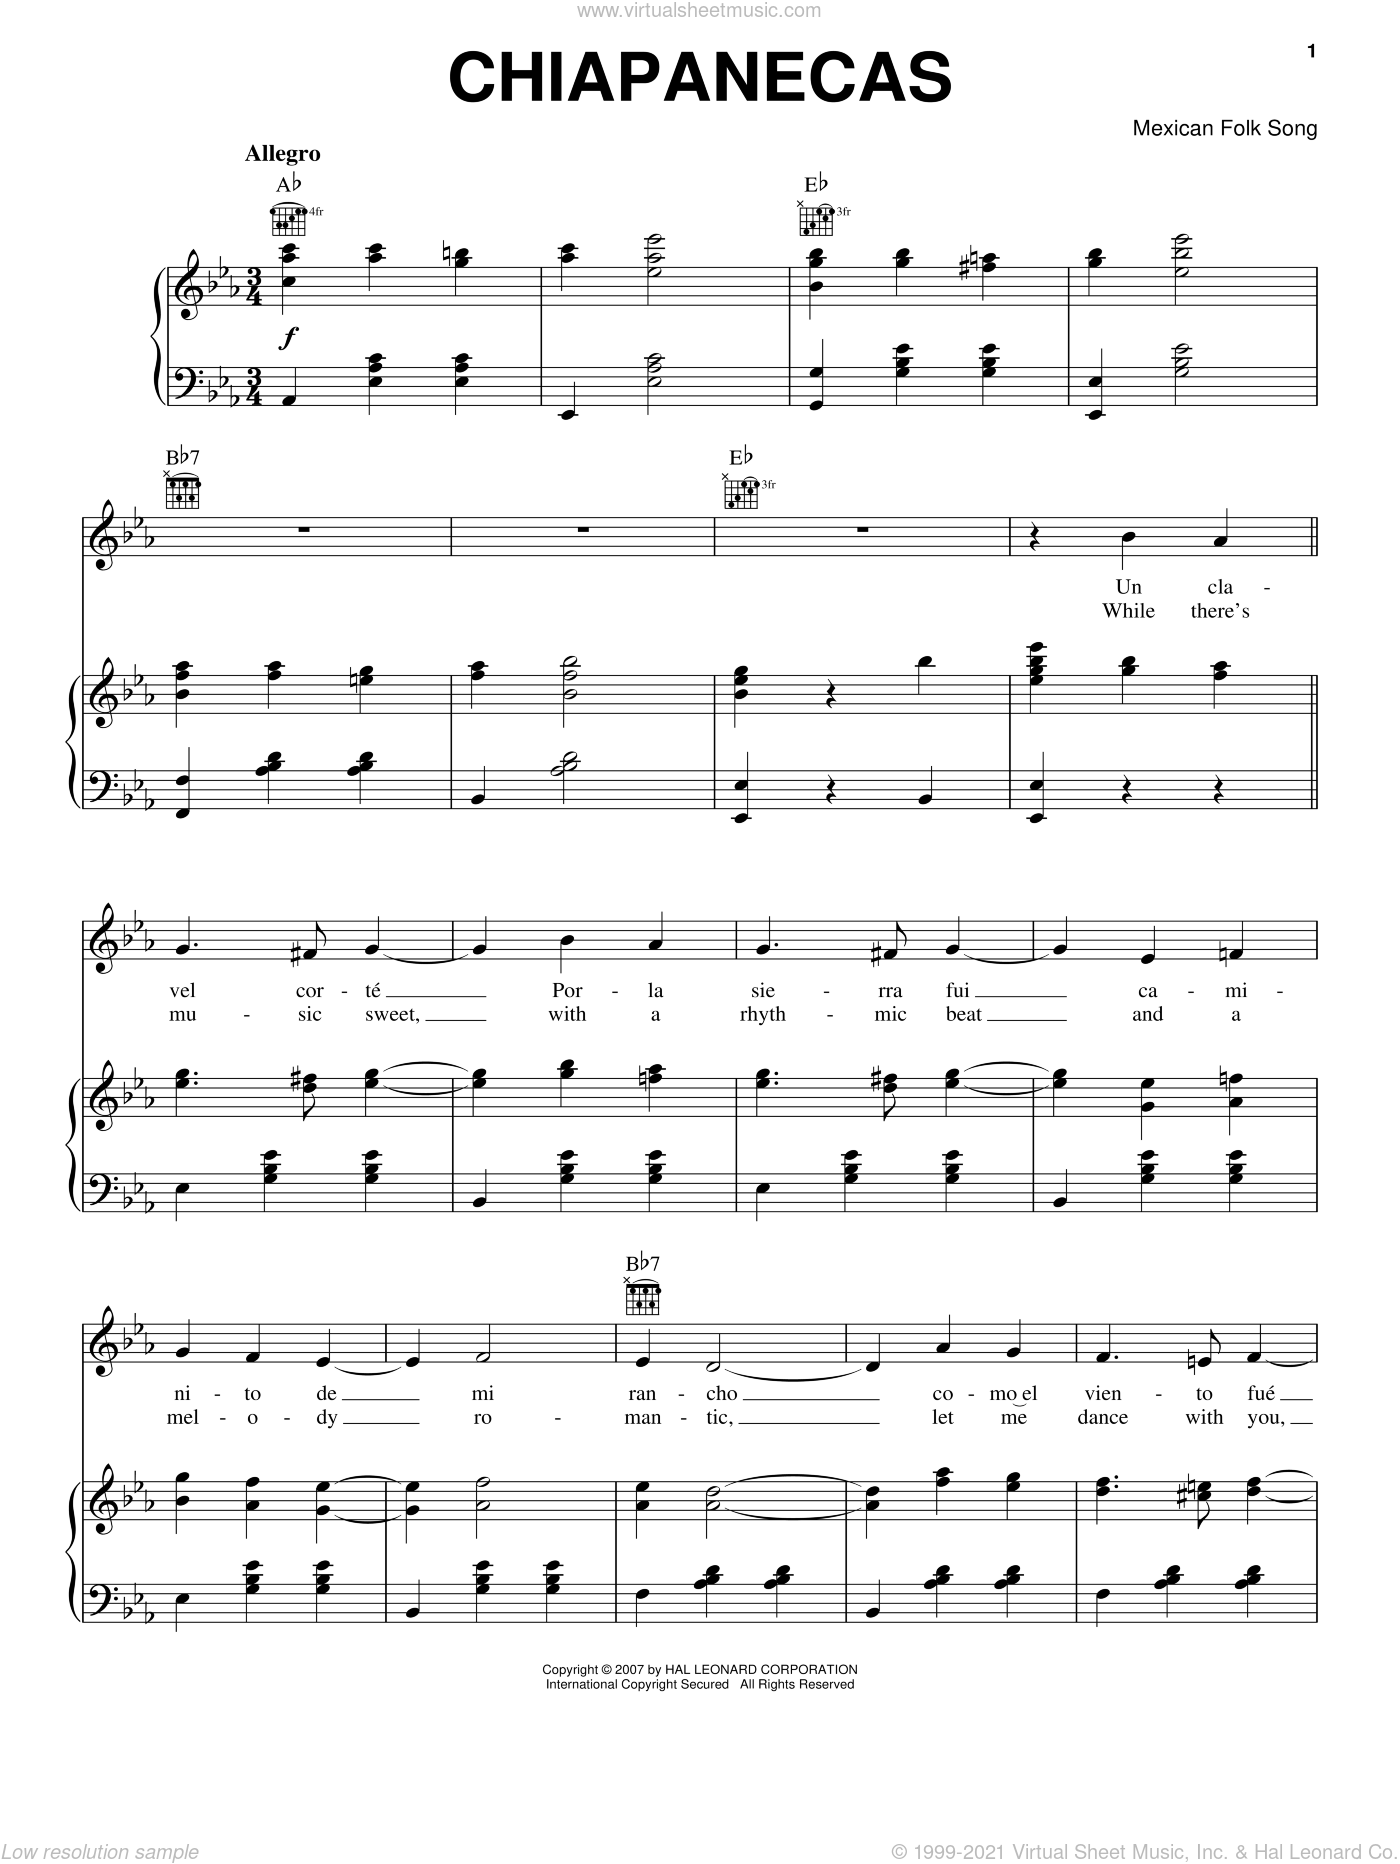 Chiapanecas sheet music for voice, piano or guitar, intermediate skill level